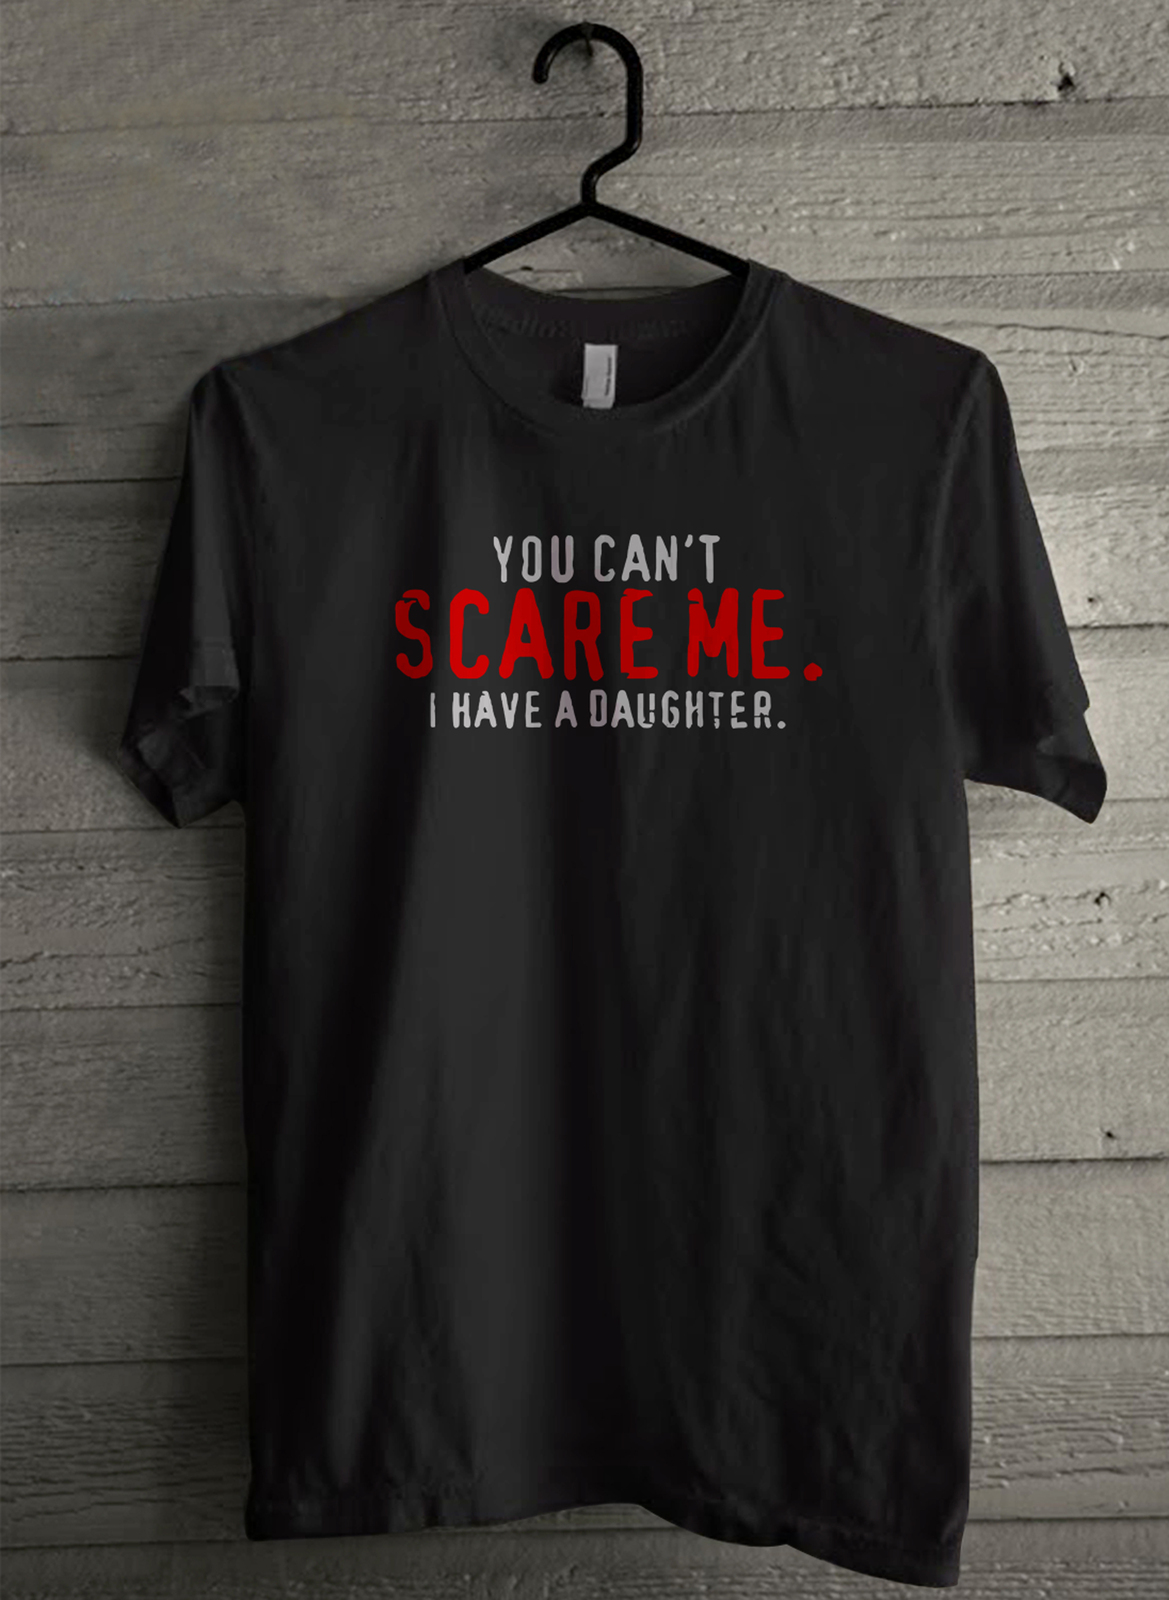 You Can't Scare Me I Have A Daughter - Custom Men's T-Shirt (692)